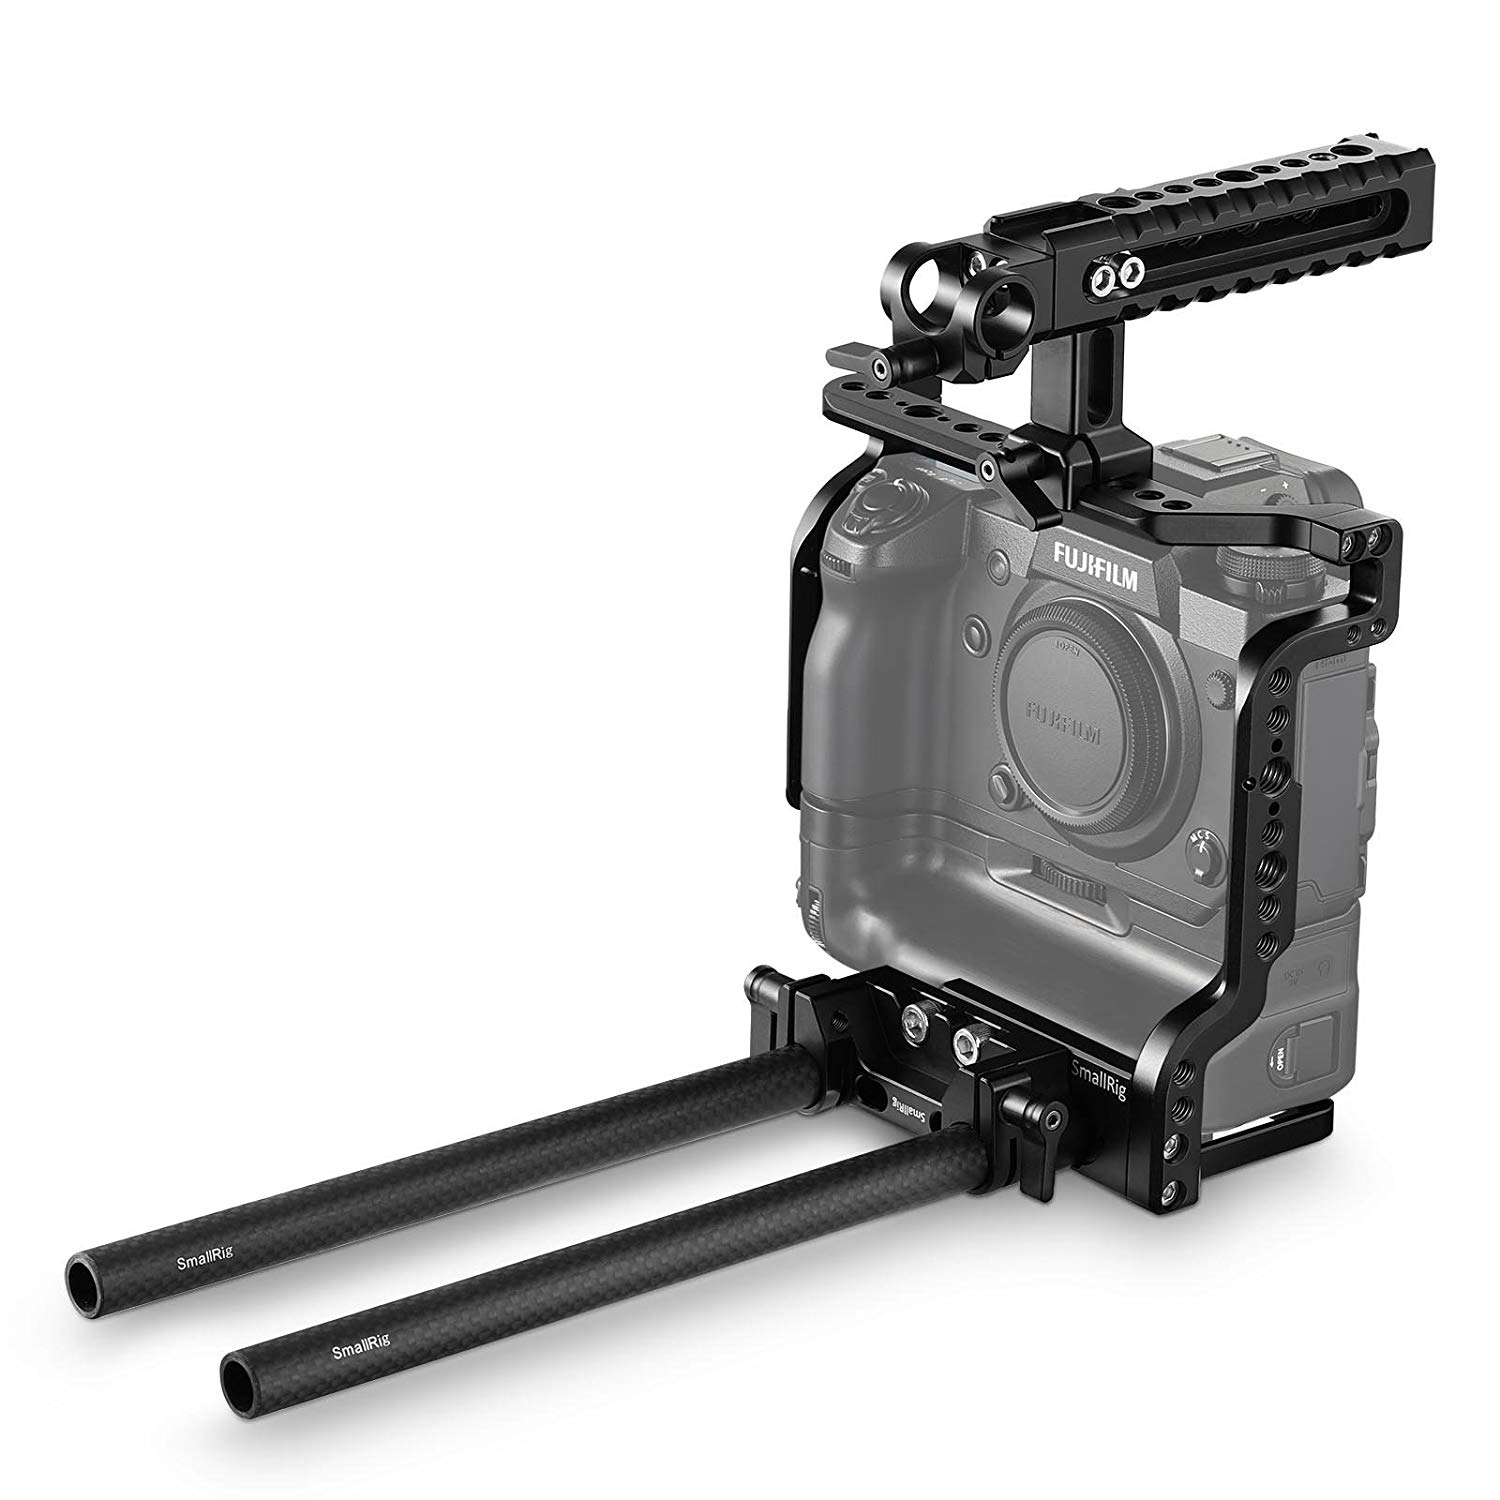 SmallRig Cage Kit with Nato Top Handle, Dual Rod Clamp and 9 inch 15mm Rods for Fujifilm X-H1 Camerawith VPB-XH1 Battery Grip - 2136